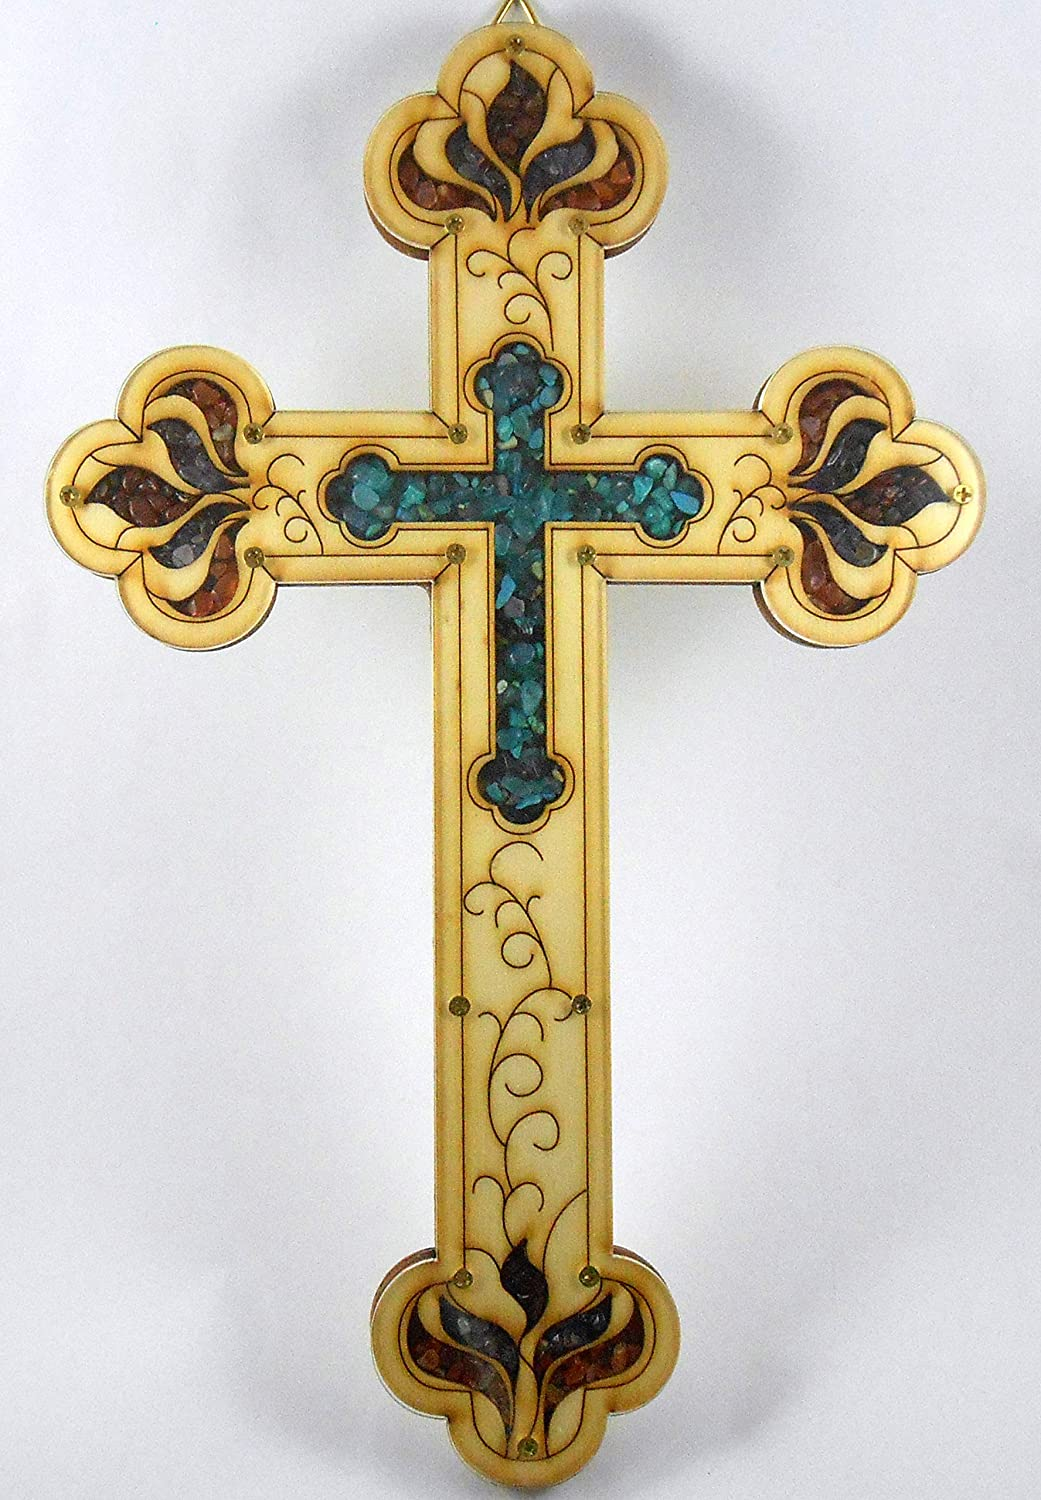 Classic Large Wood Turquoise Cross Wall Decor Hanging Housewarming Orthodox Christian Religious Charm Stone Icon Gift made in the Holy land